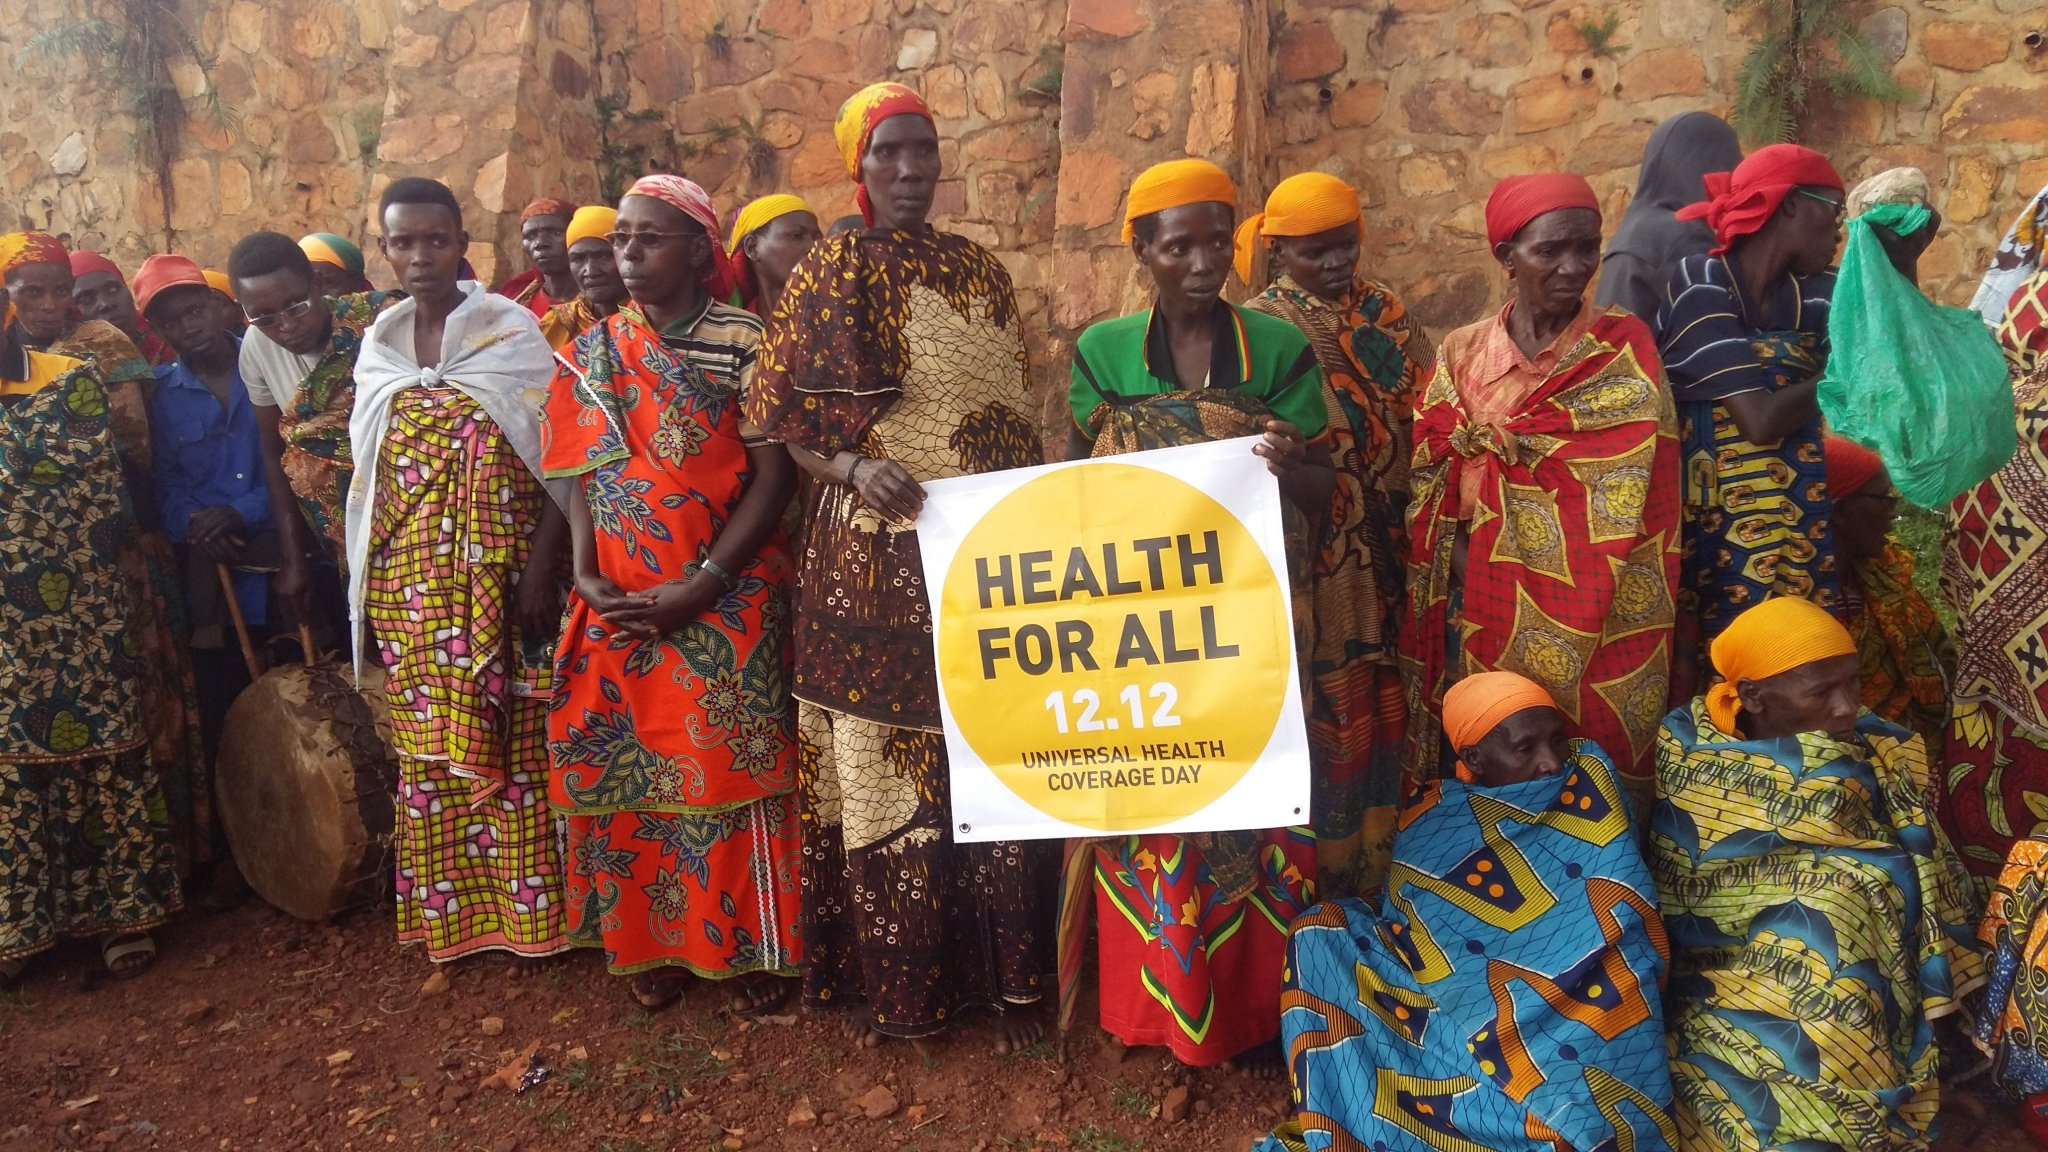 #HEALTHFORALL Health is a right not a privilege @UHC_Day @IHP_plus @LMGforhealth @HFGProject Celebration of UHC in BBI @UN @AA_SouthAfrica https://t.co/sfICVbZkbN